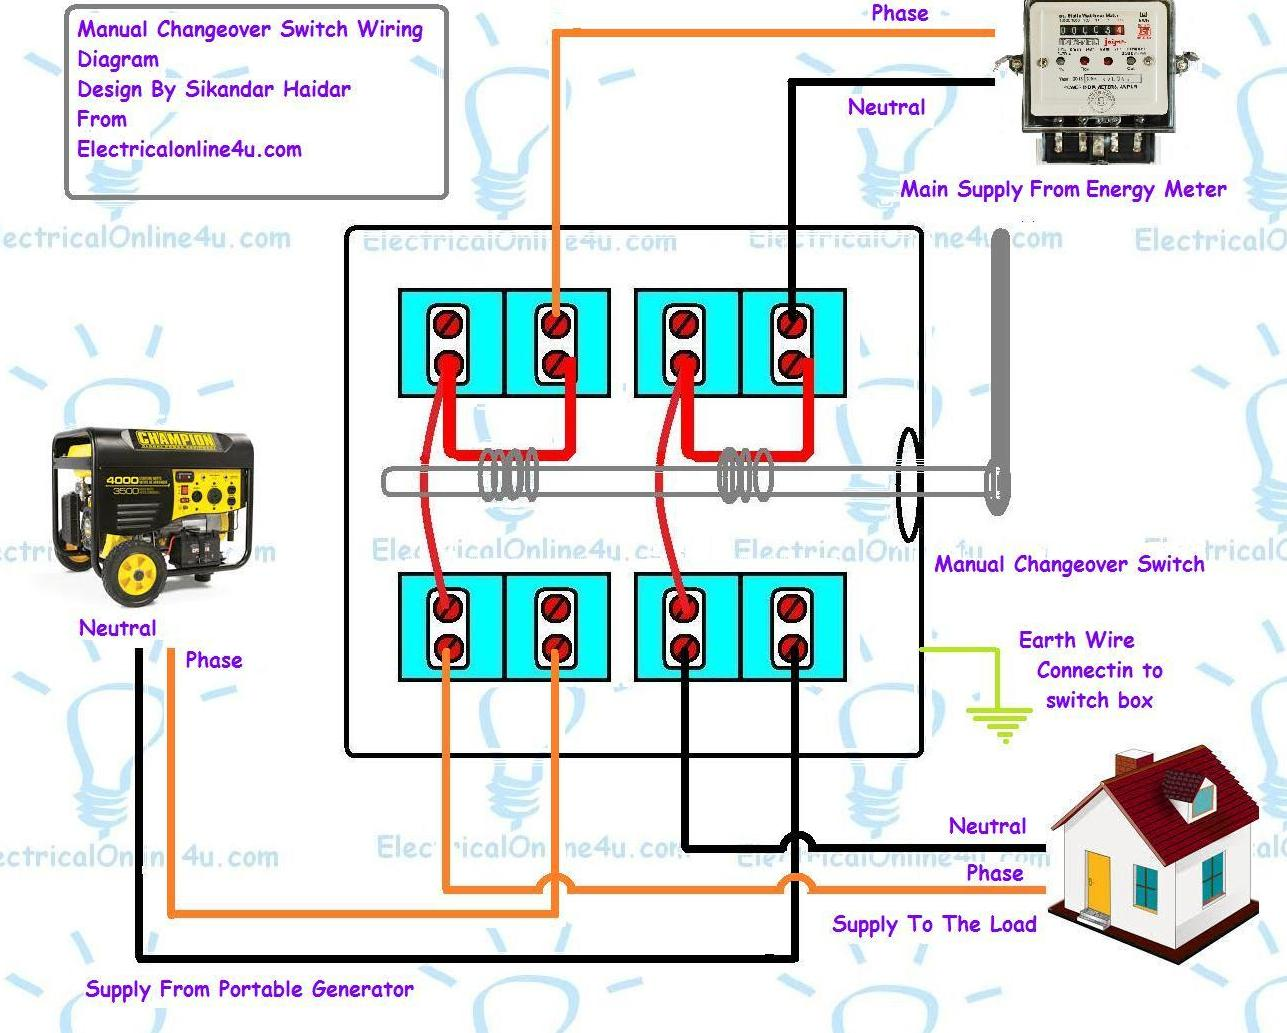 generator wiring diagram and electrical schematics generator wiring diagram and electrical schematics circuit diagram generator wiring diagram and electrical schematics electronics and schematic circuit diagrams